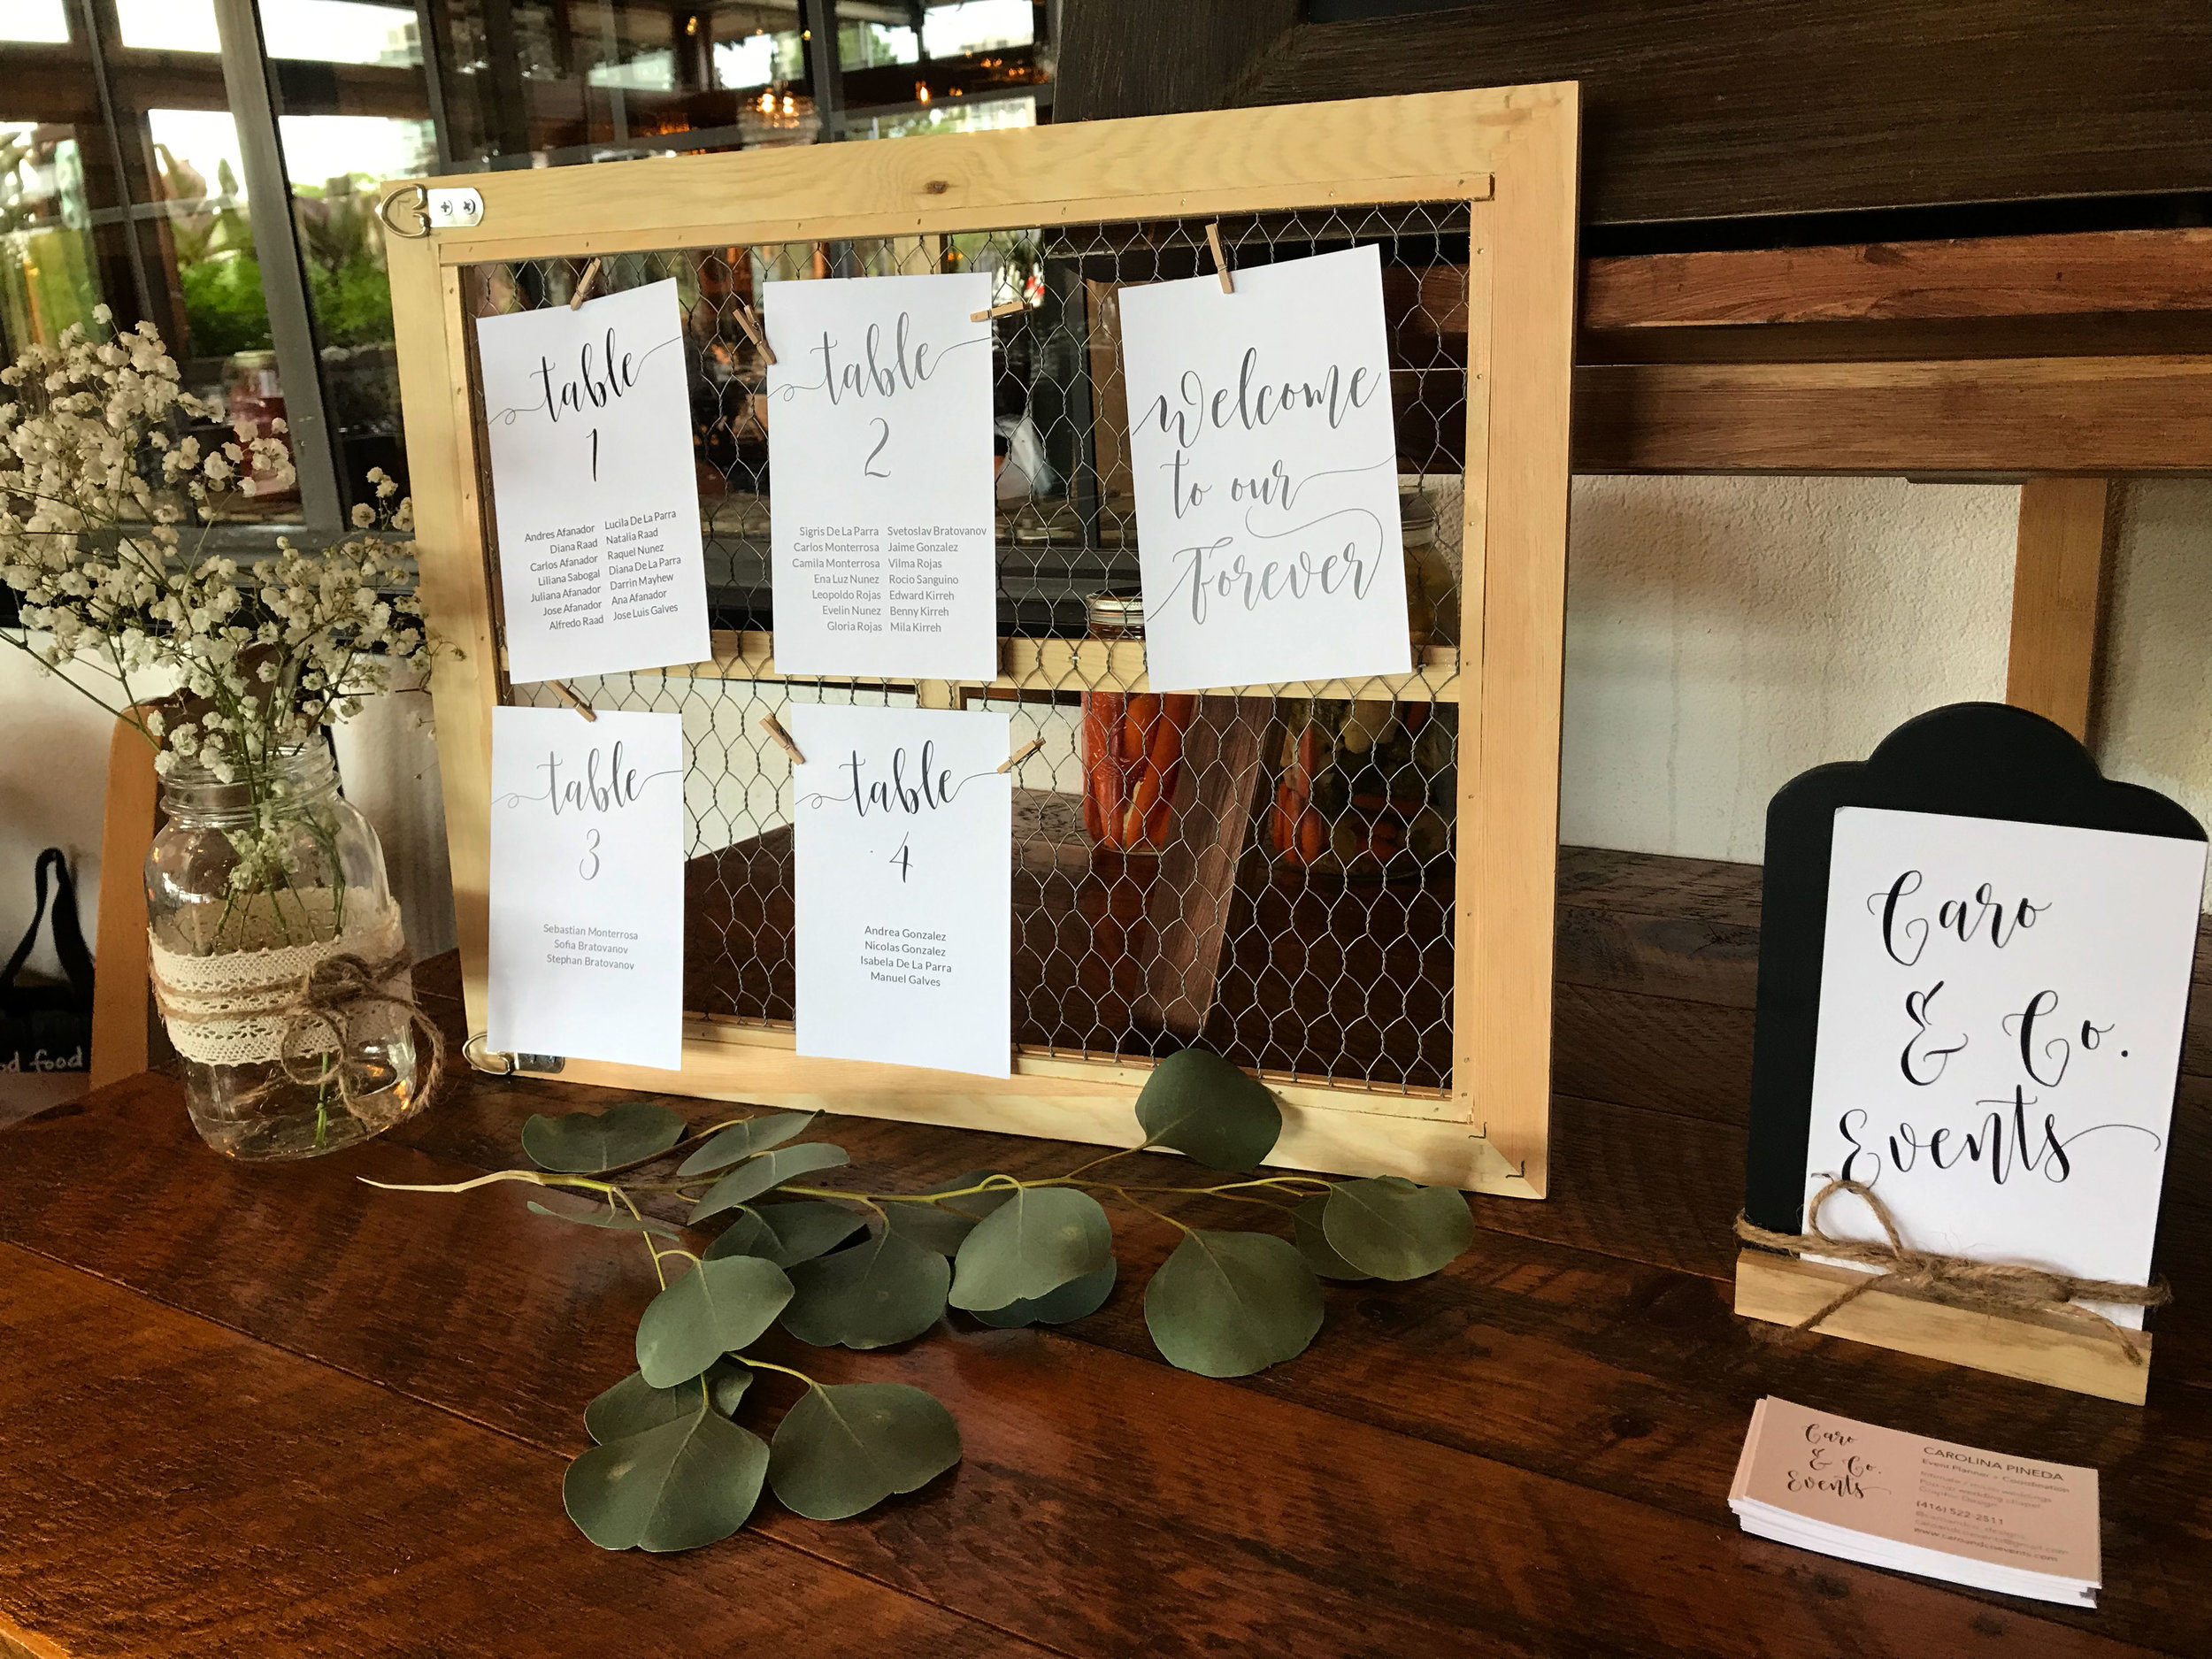 diana-andres-rustic-harvest-rustic-seating-chart-table.jpg